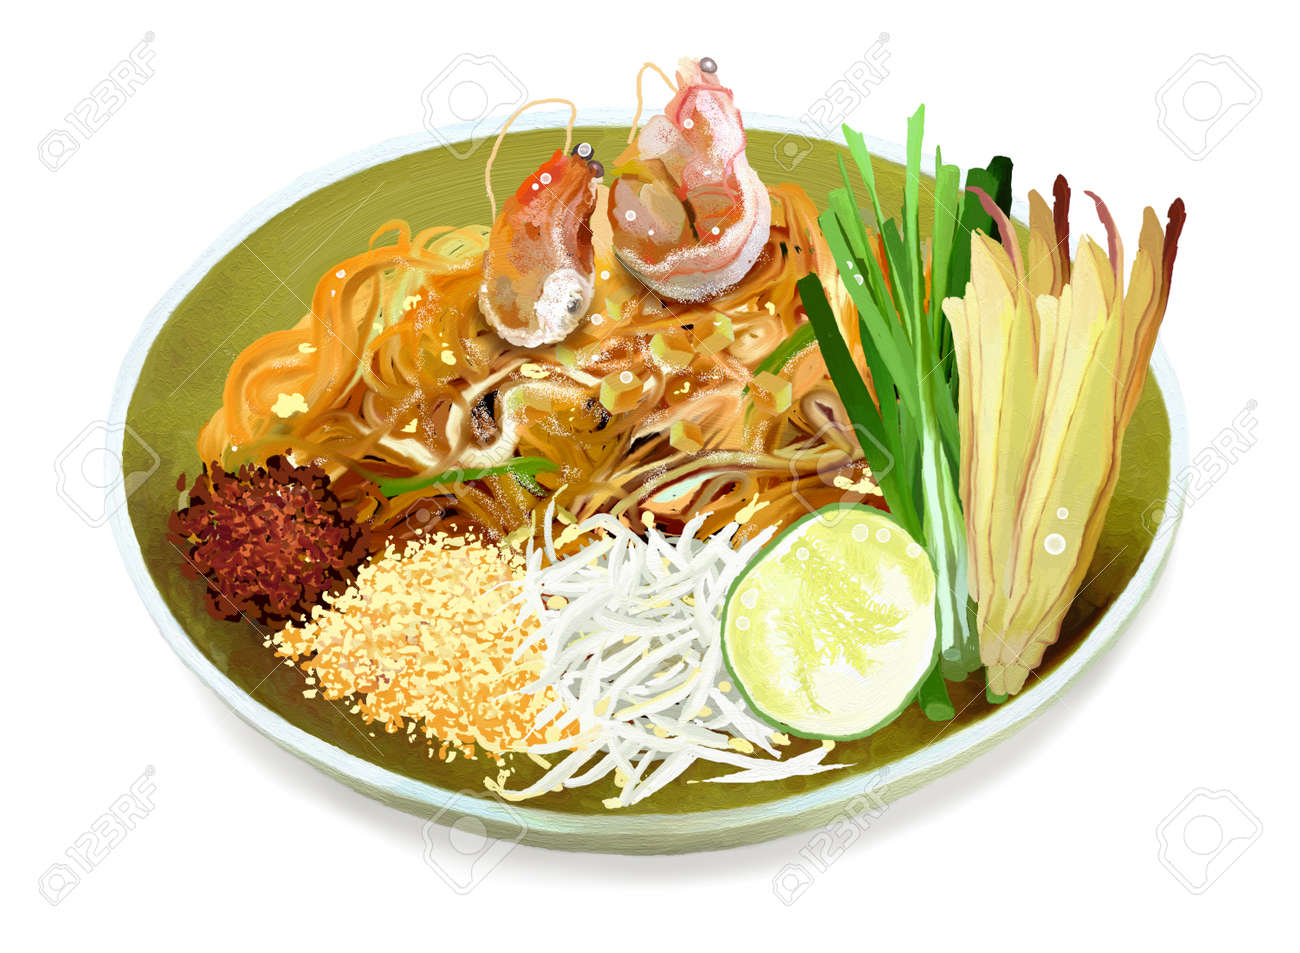 Pad Thai is a Dish of Stir Fried Rice Noodles with Eggs, Shrimps and Peanuts is a Famous Thai Cuisine - 14508291